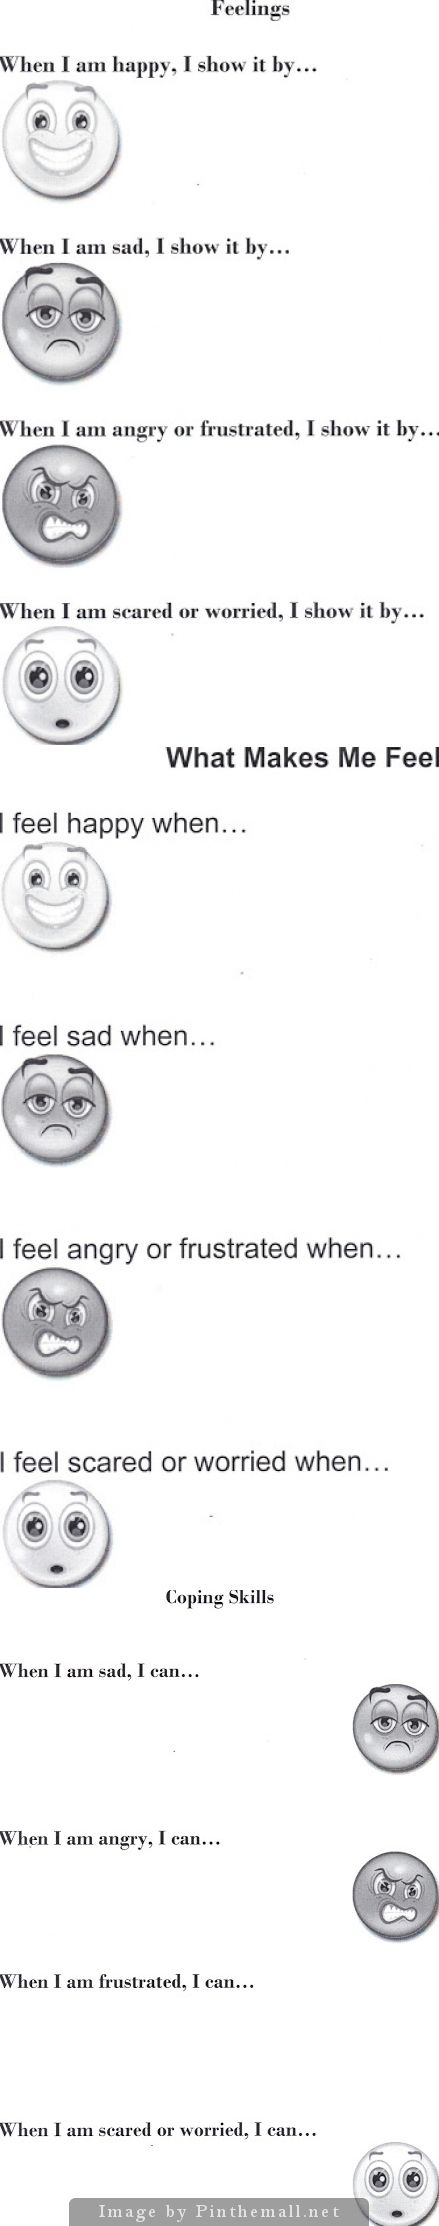 17 Best images about Emotions/Feelings Recognition on Pinterest